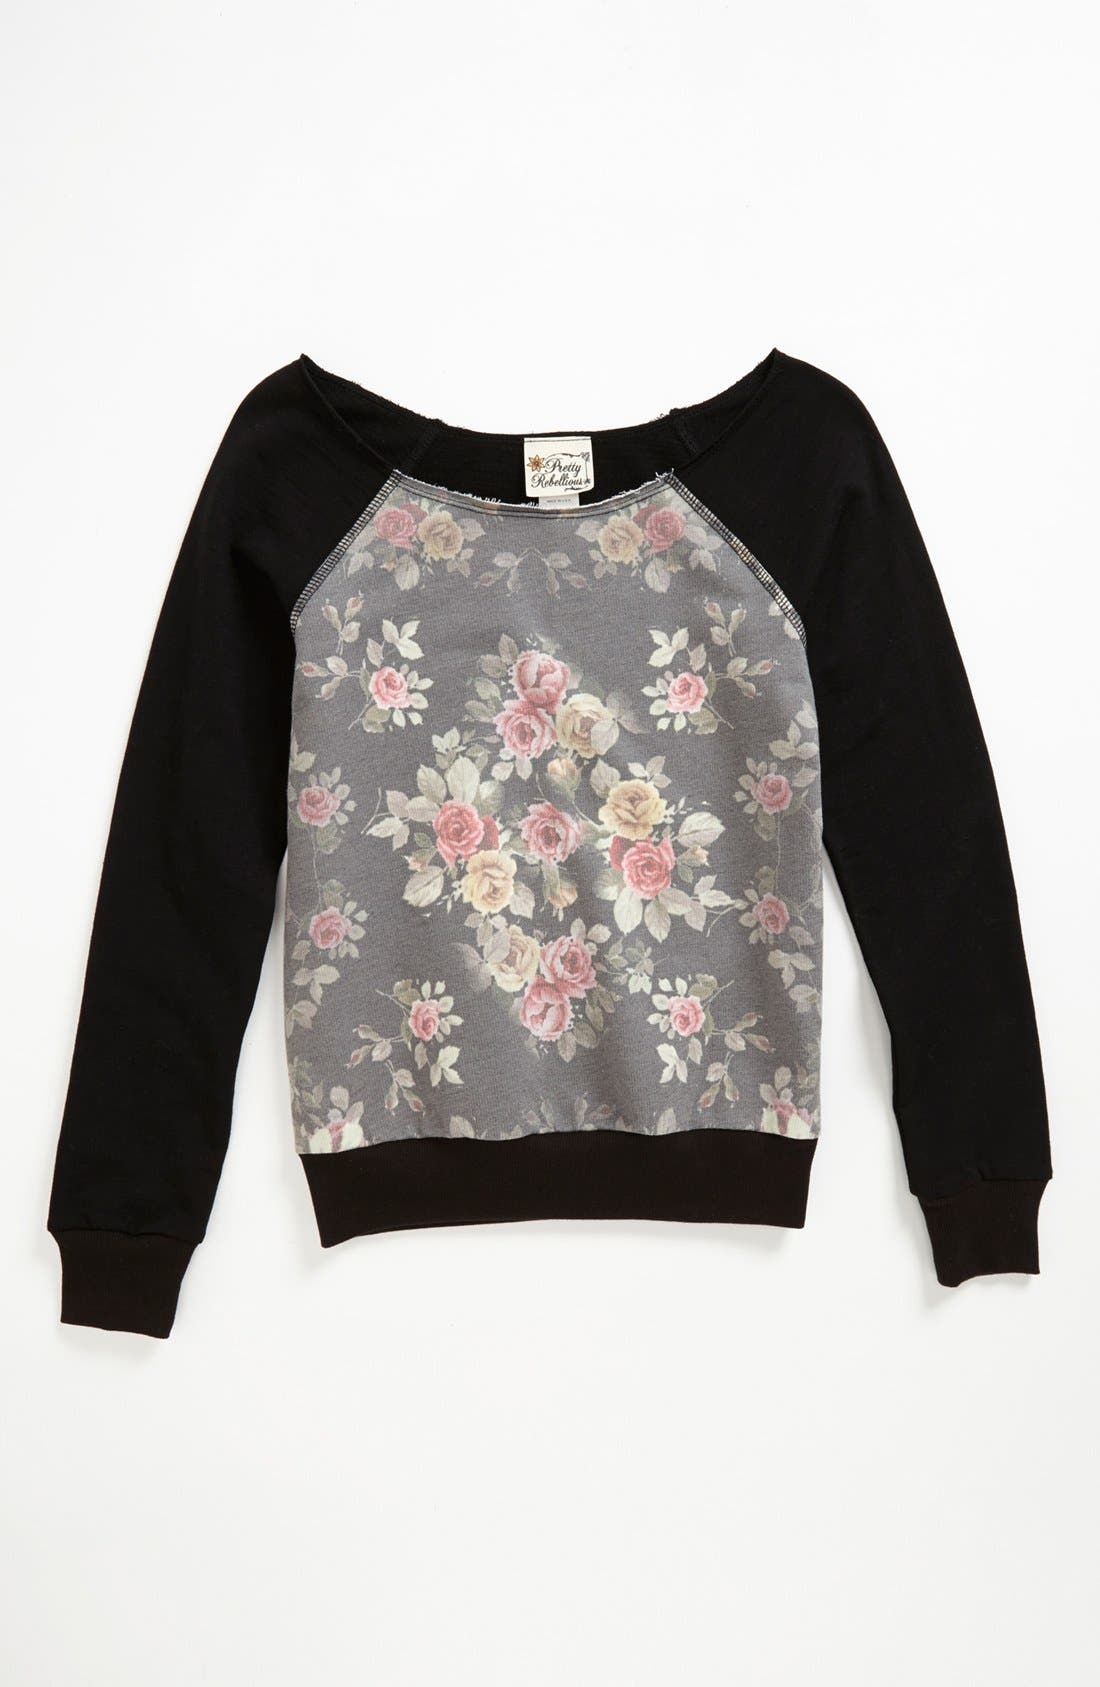 Alternate Image 1 Selected - Pretty Rebellious Floral Inset Sweatshirt (Big Girls)